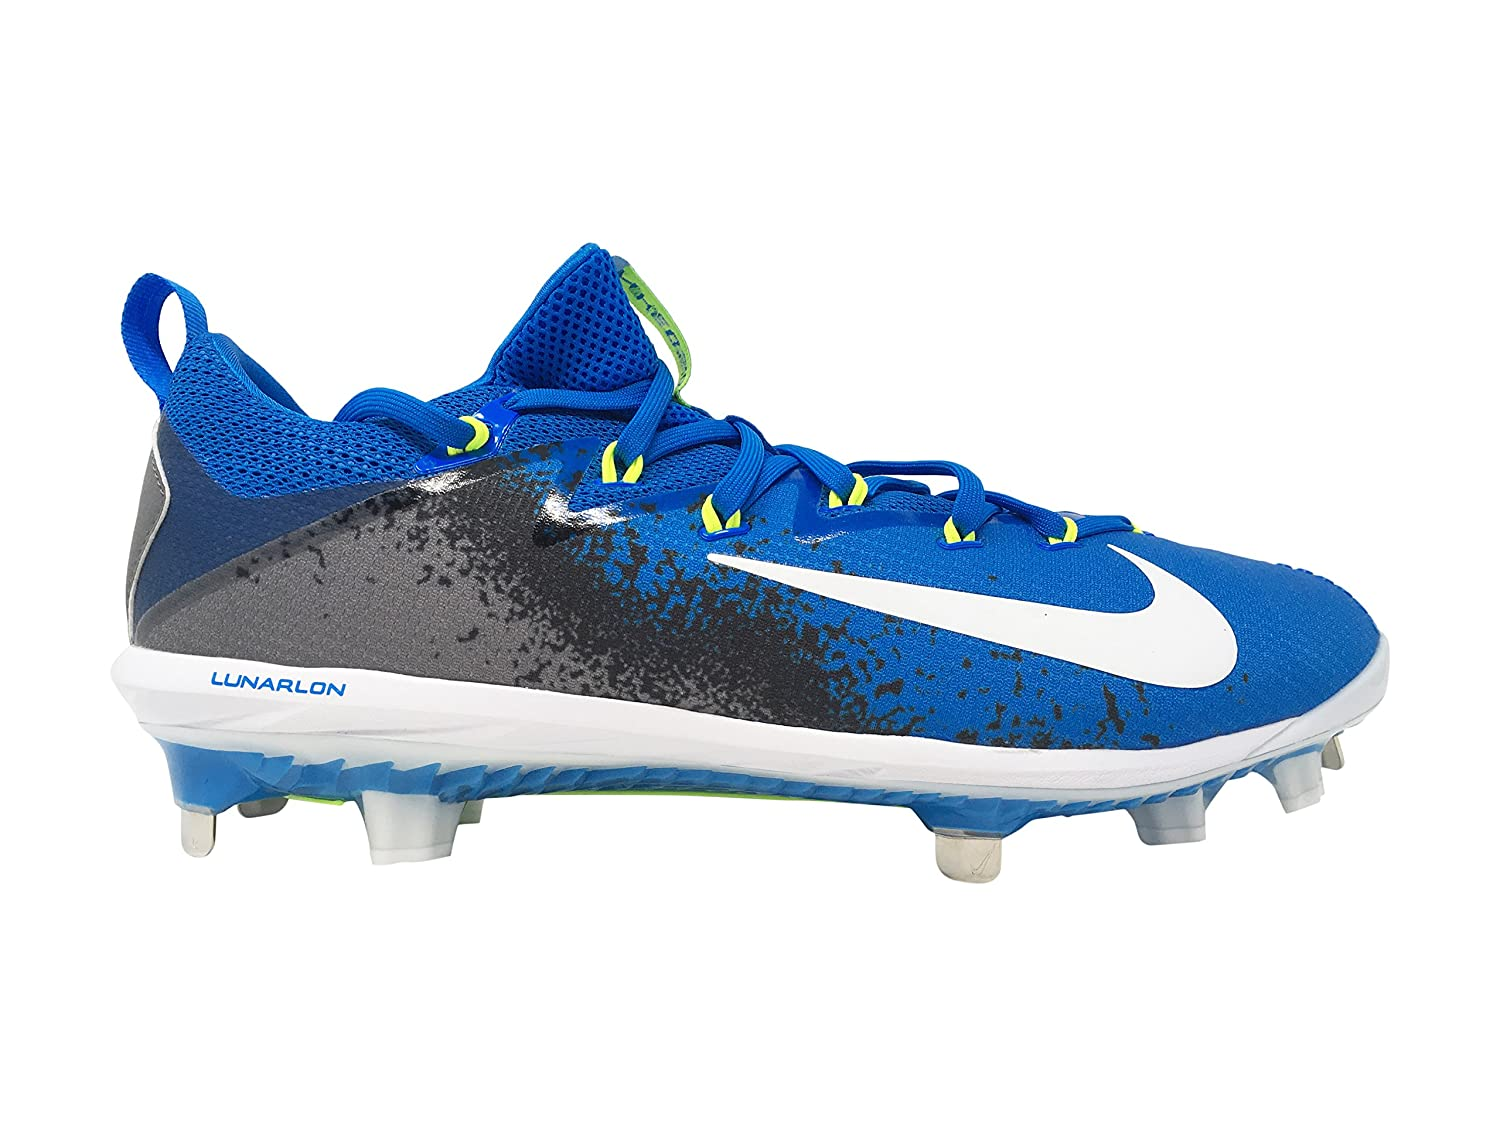 NIKE Men's Lunar Vapor Ultrafly Elite Baseball Cleat B073NDXPTB 12 D(M) US|Blue/Grey/White/Neon